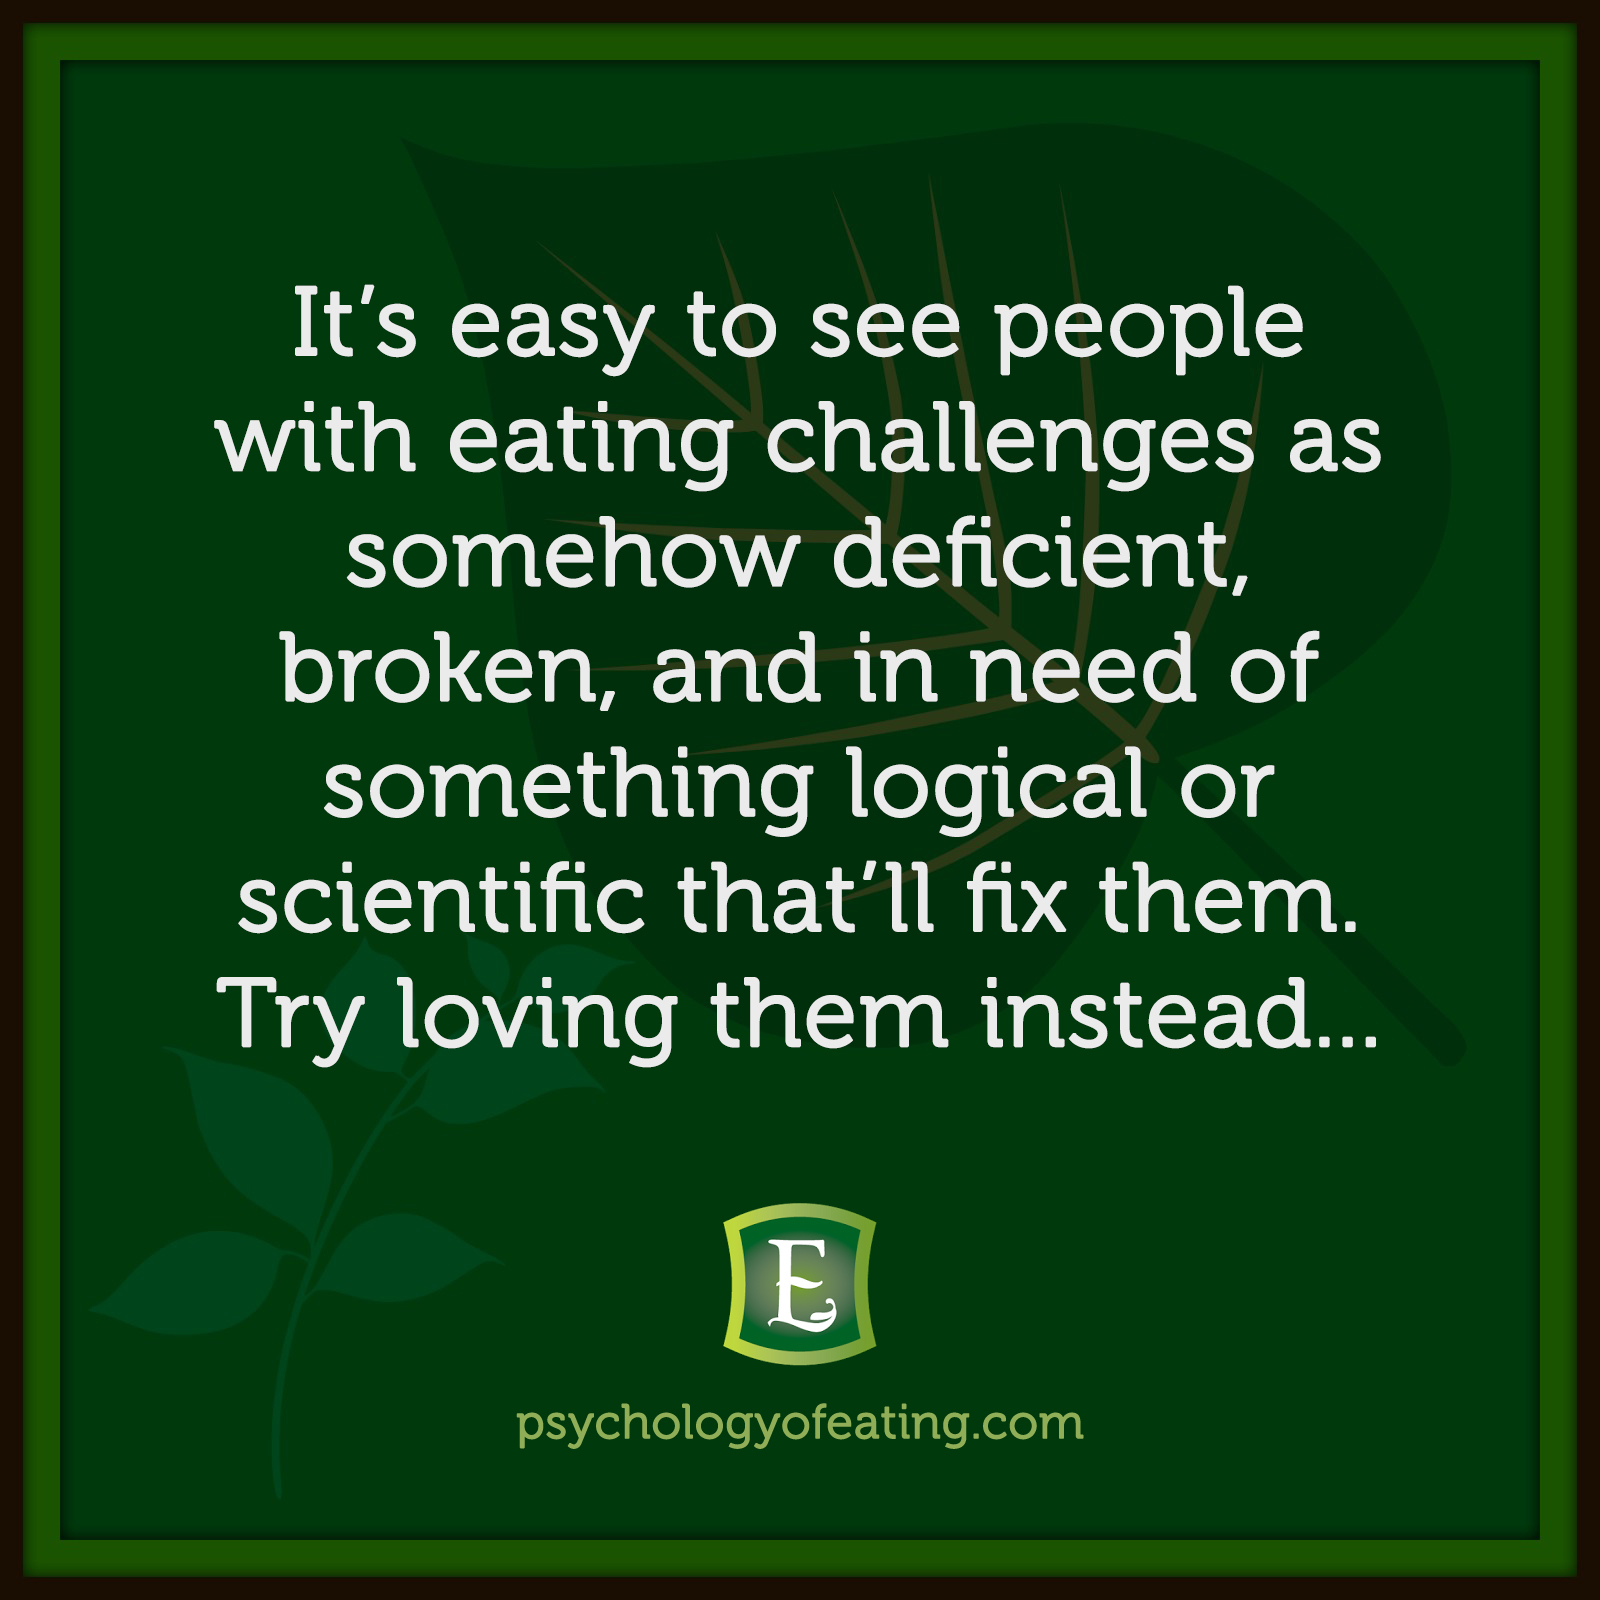 It's easy to see people with eating challenges as somehow deficient, broken, and in need of something logical or scientific that'll fix them. Try loving them instead…  Marc David #health #nutrition #eatingpsychology #IPE